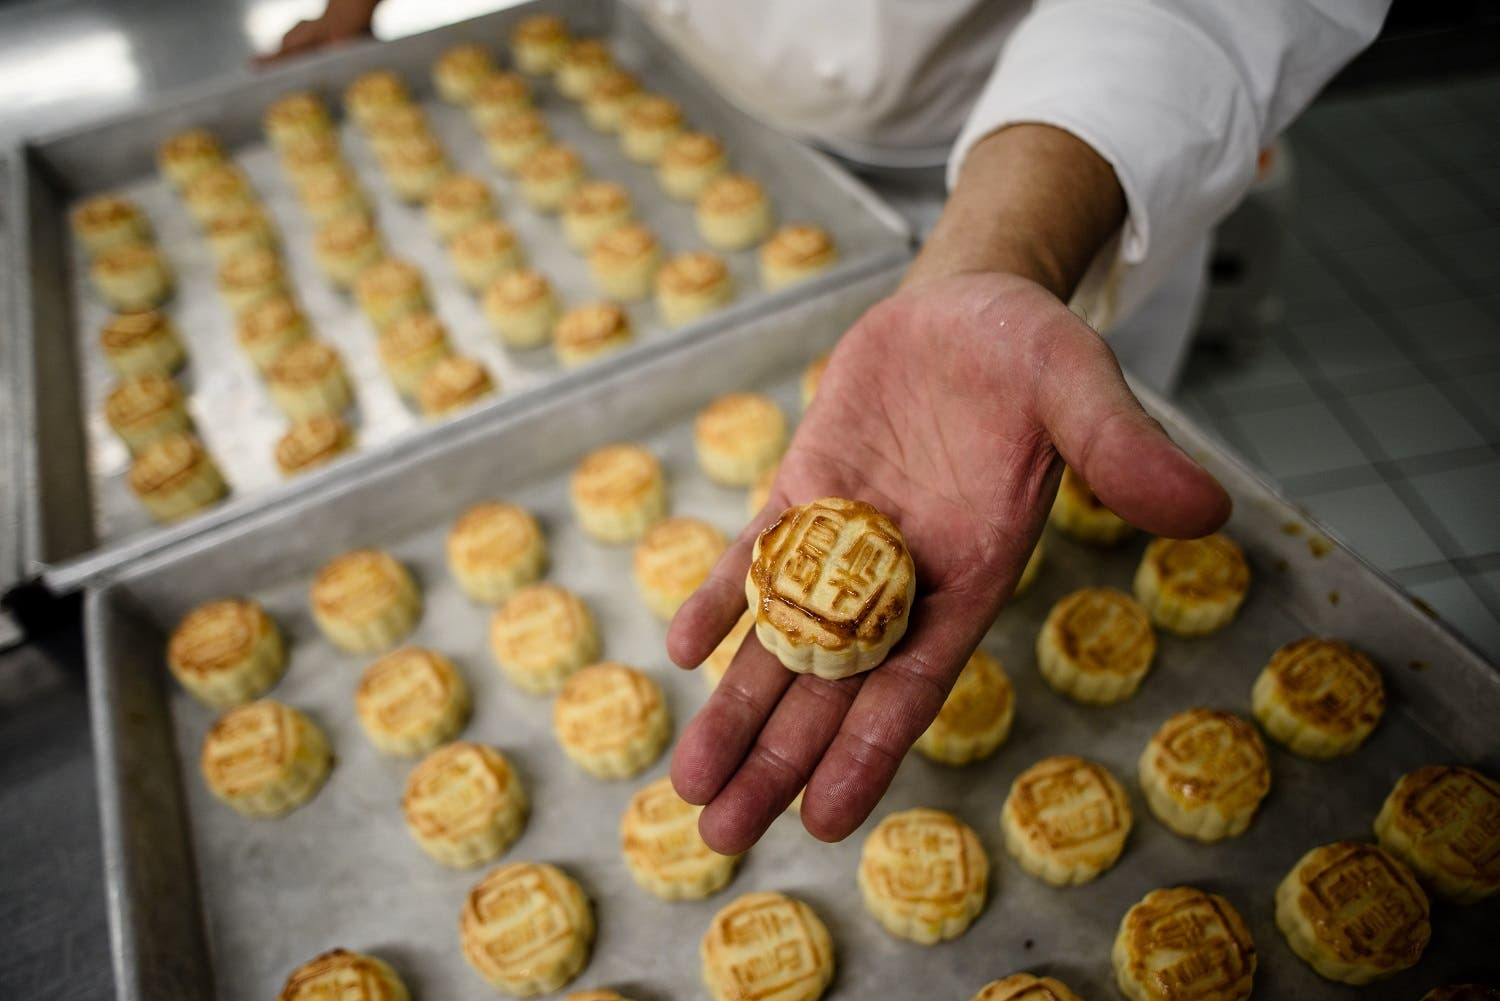 """Chef Yip Wing-wah displays his freshly oven-baked signature """"spring moon mini egg custard mooncakes"""". (AFP)"""